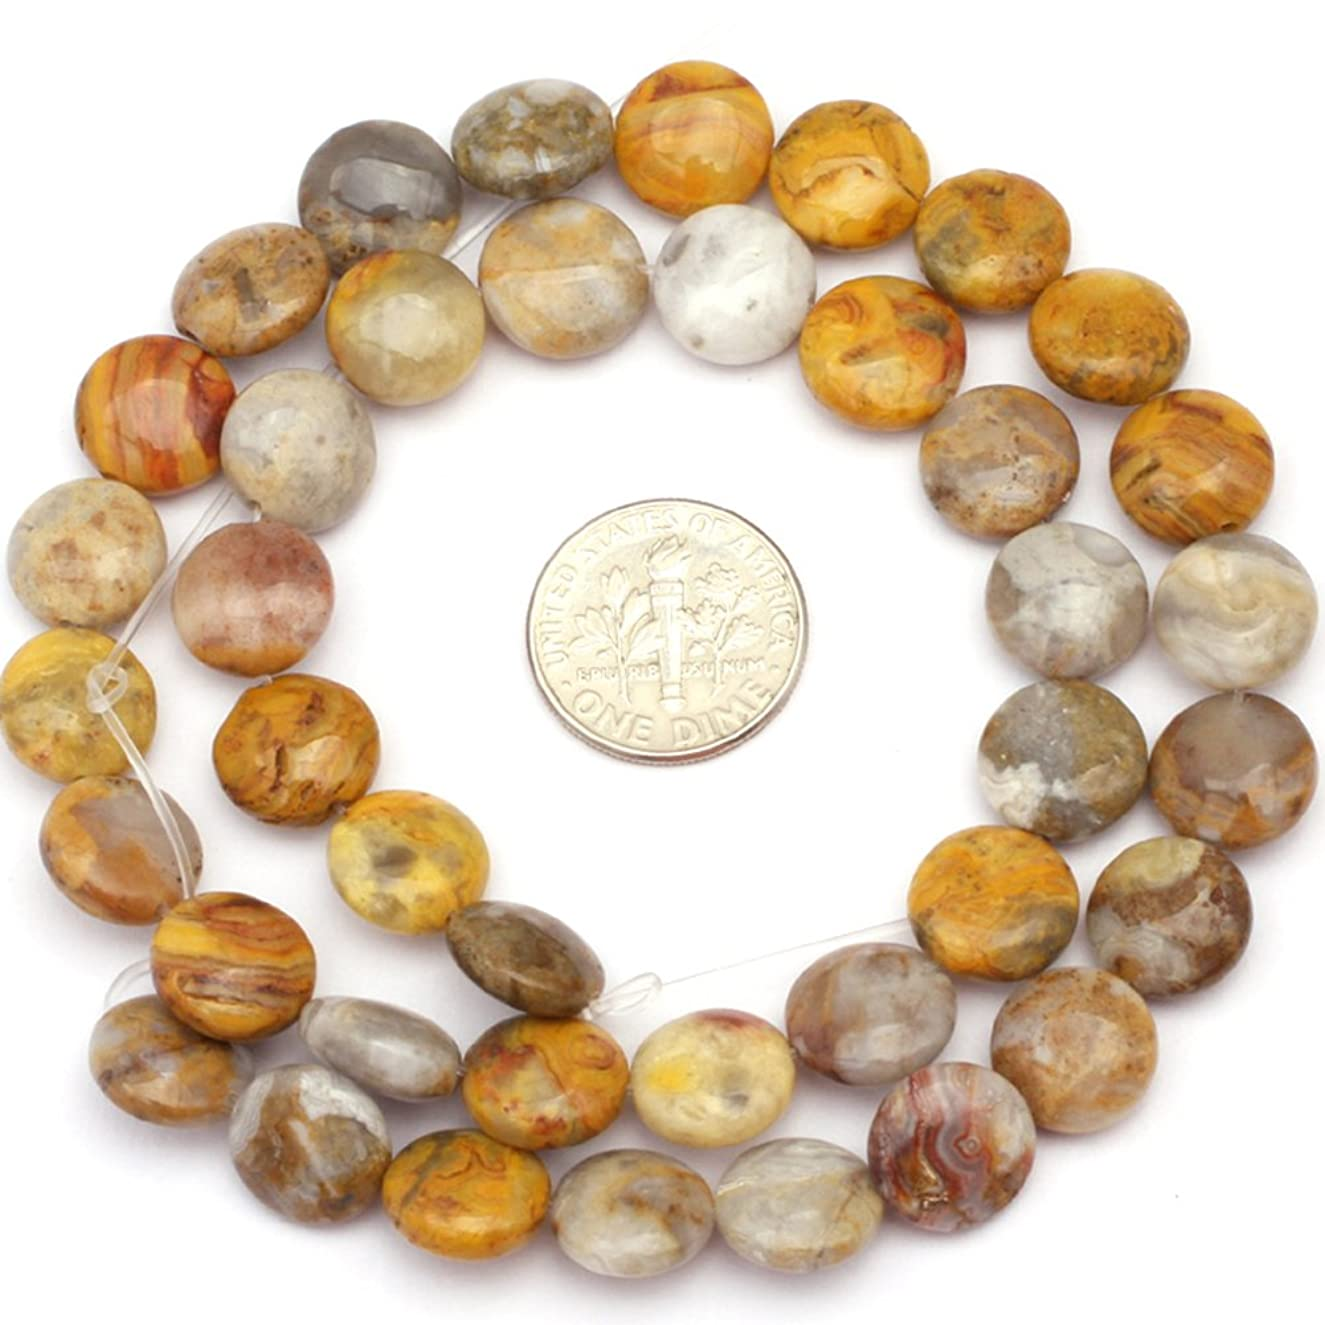 Crazy Lace Agate Beads for Jewelry Making Natural Semi Precious Gemstone 10mm Coin Strand 15